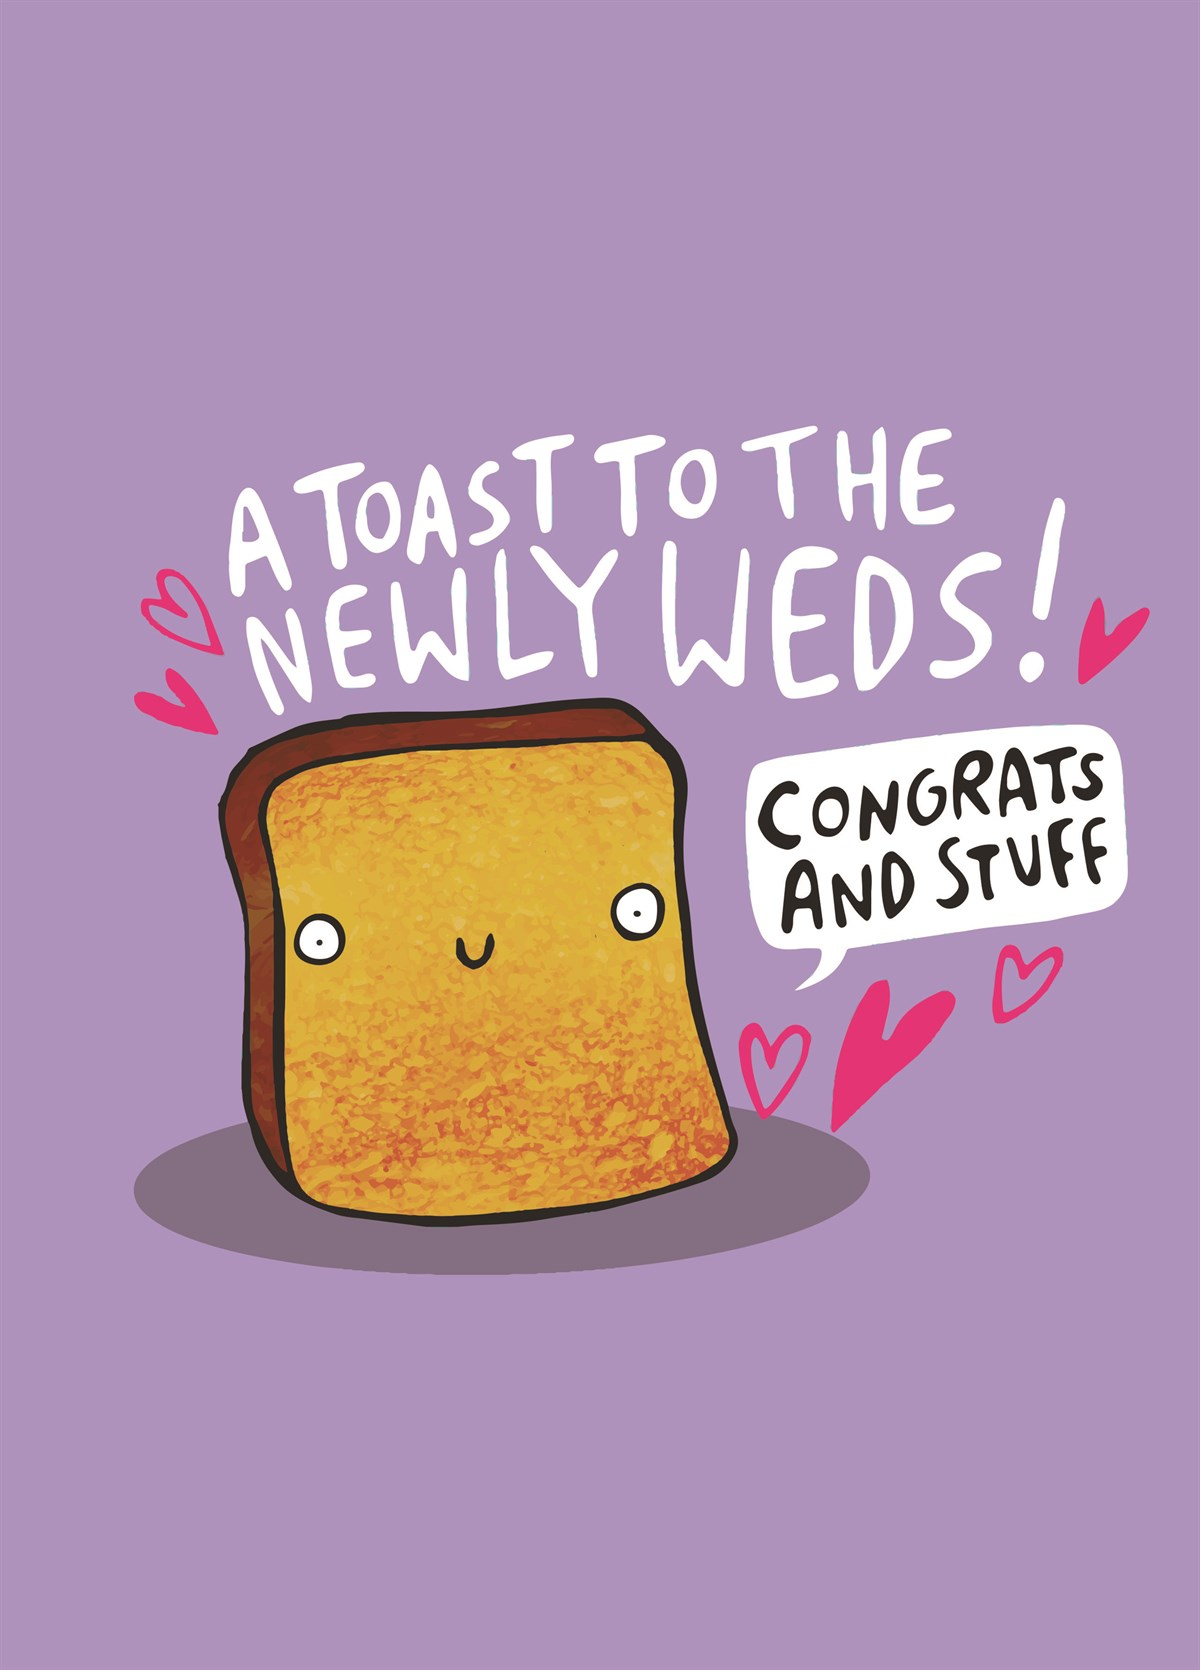 Funny Anniversary Card With Avocado and Toast Greetings Card For Couples Wedding Card For Newlyweds From Rock On Ruby